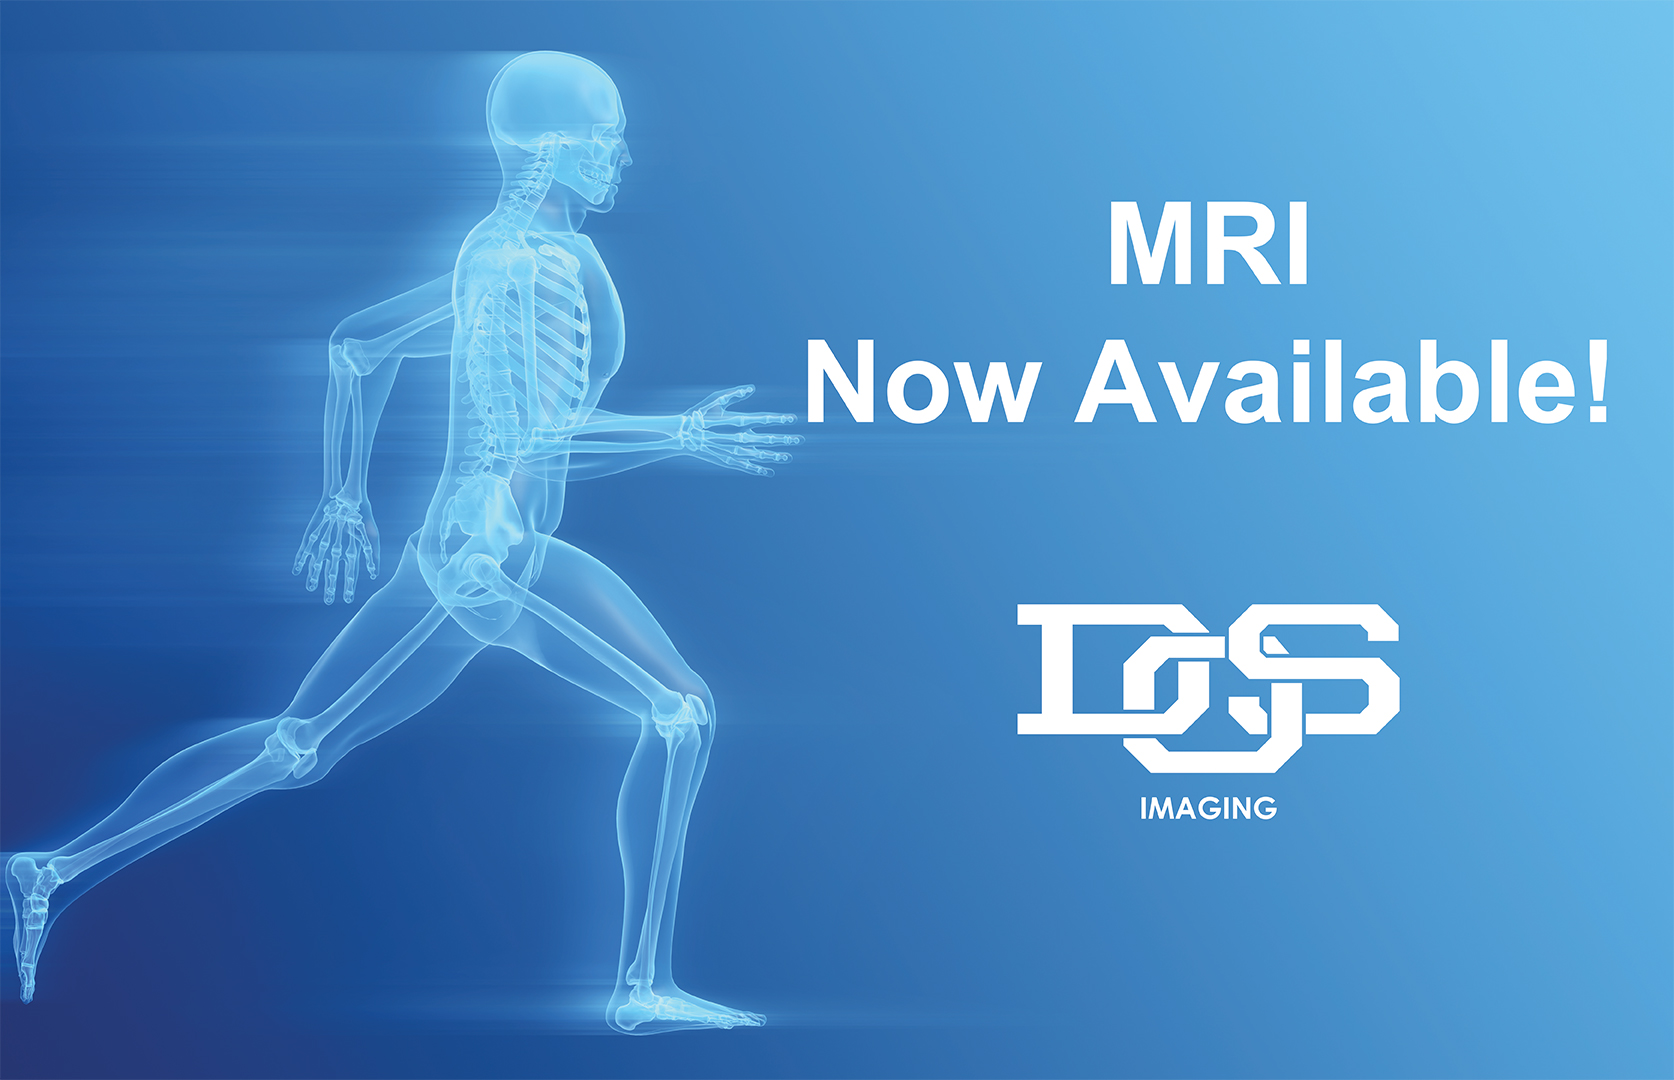 MRI Now Available